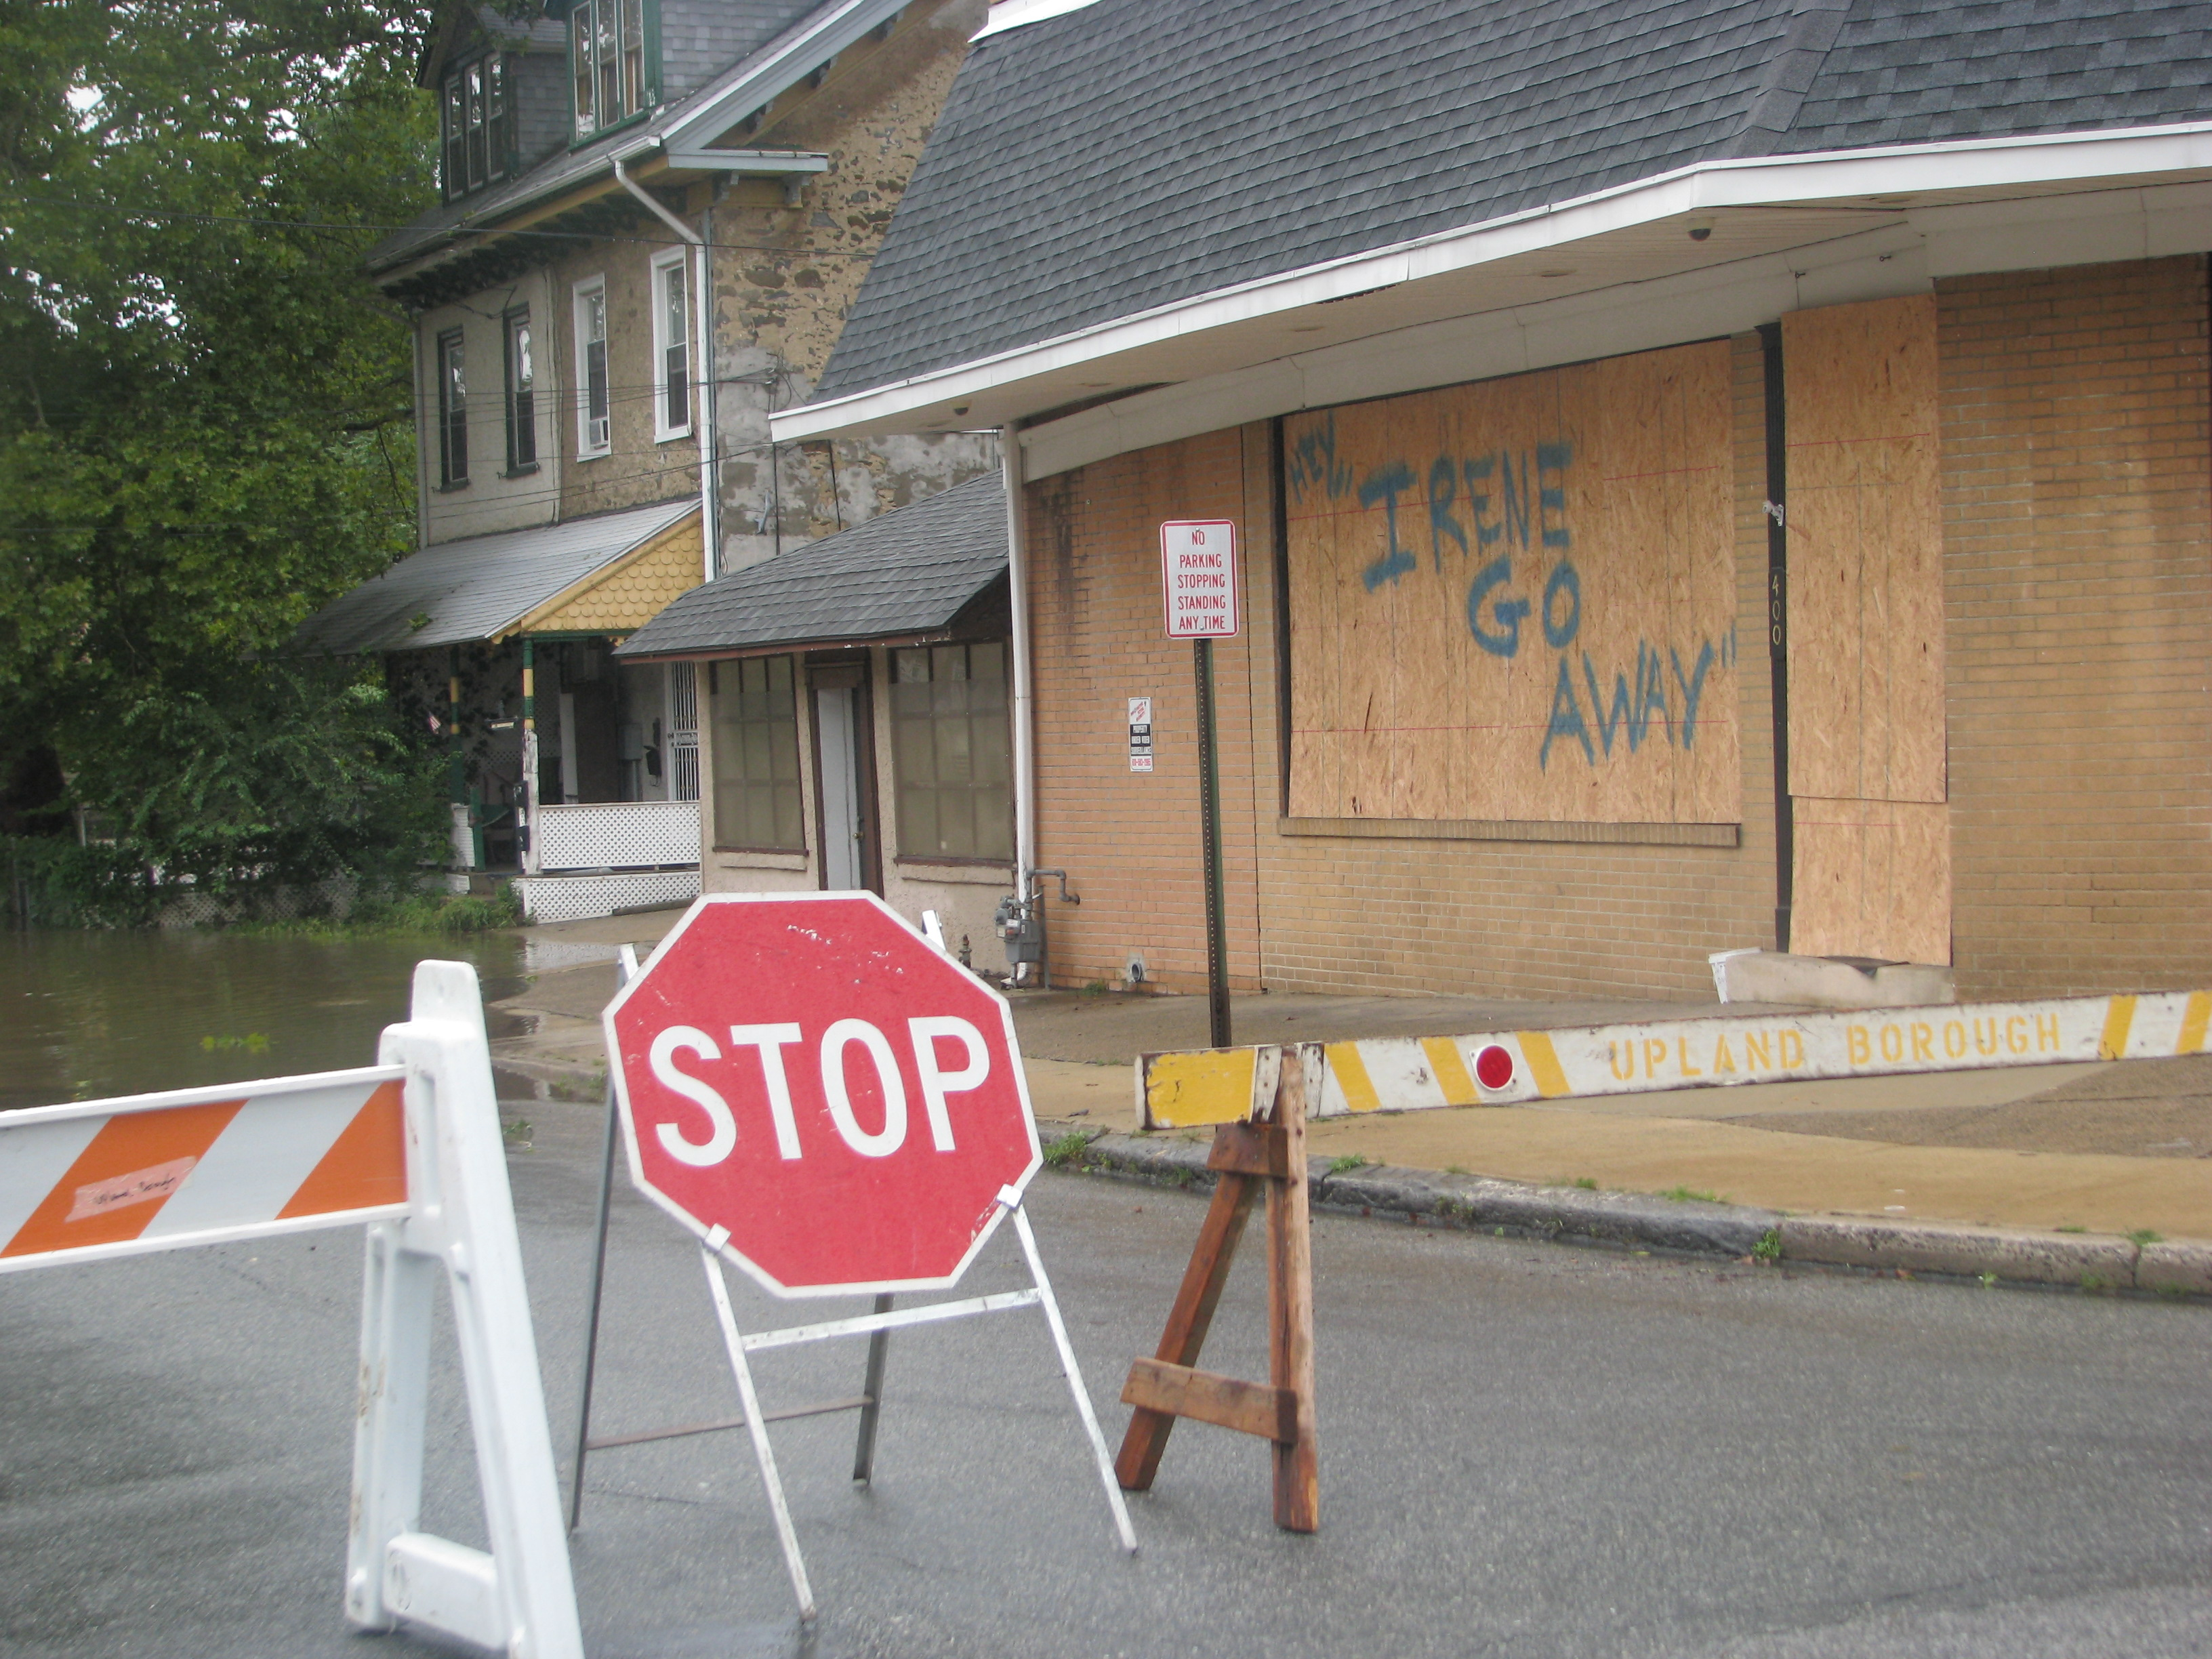 Hurricane Irene caused havoc in local communities